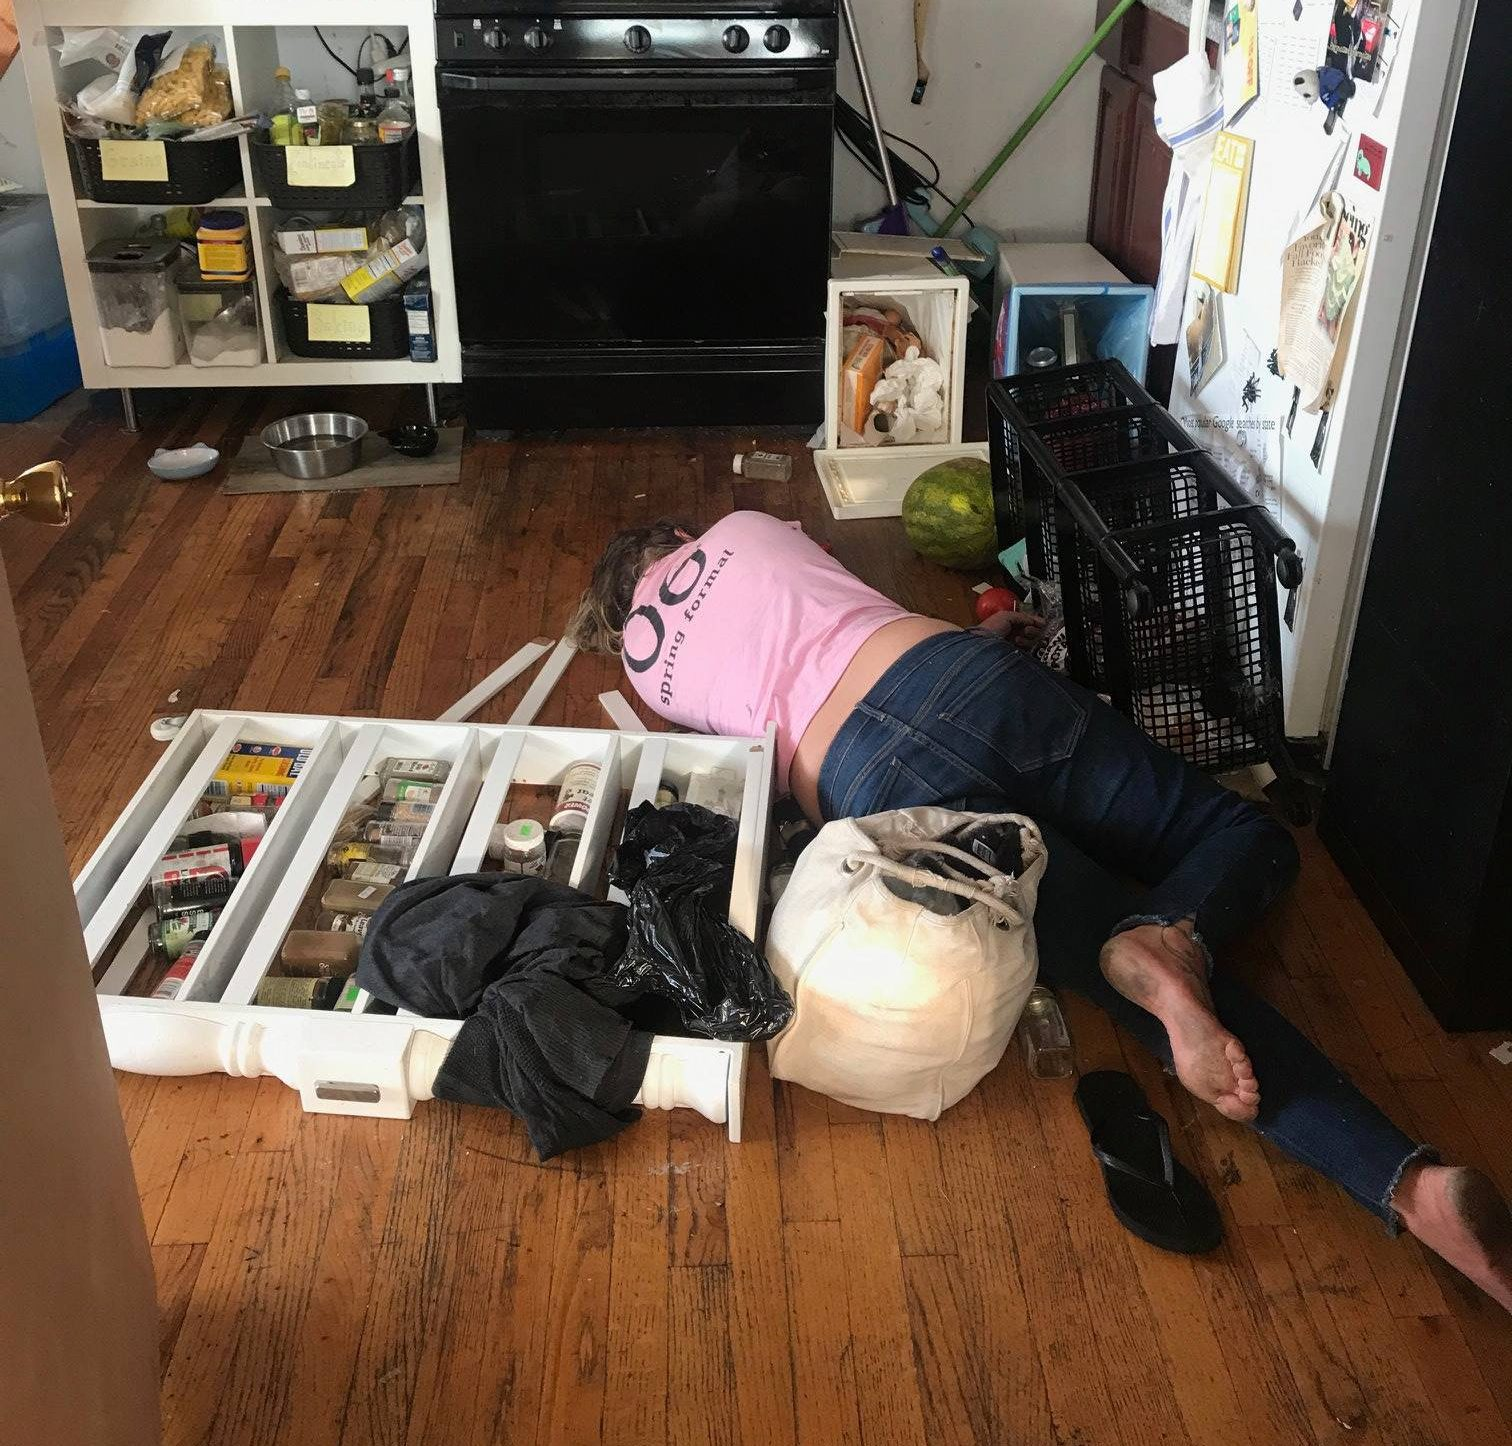 METRO GRAB - taken from th Facebook of Geevee Snow without permission - viral Cleaner helped herself to homeowner's vodka then passed out on the floor https://www.facebook.com/photo.php?fbid=10212092184010820&set=pcb.10212092202611285&type=3&theater Geevee Snow